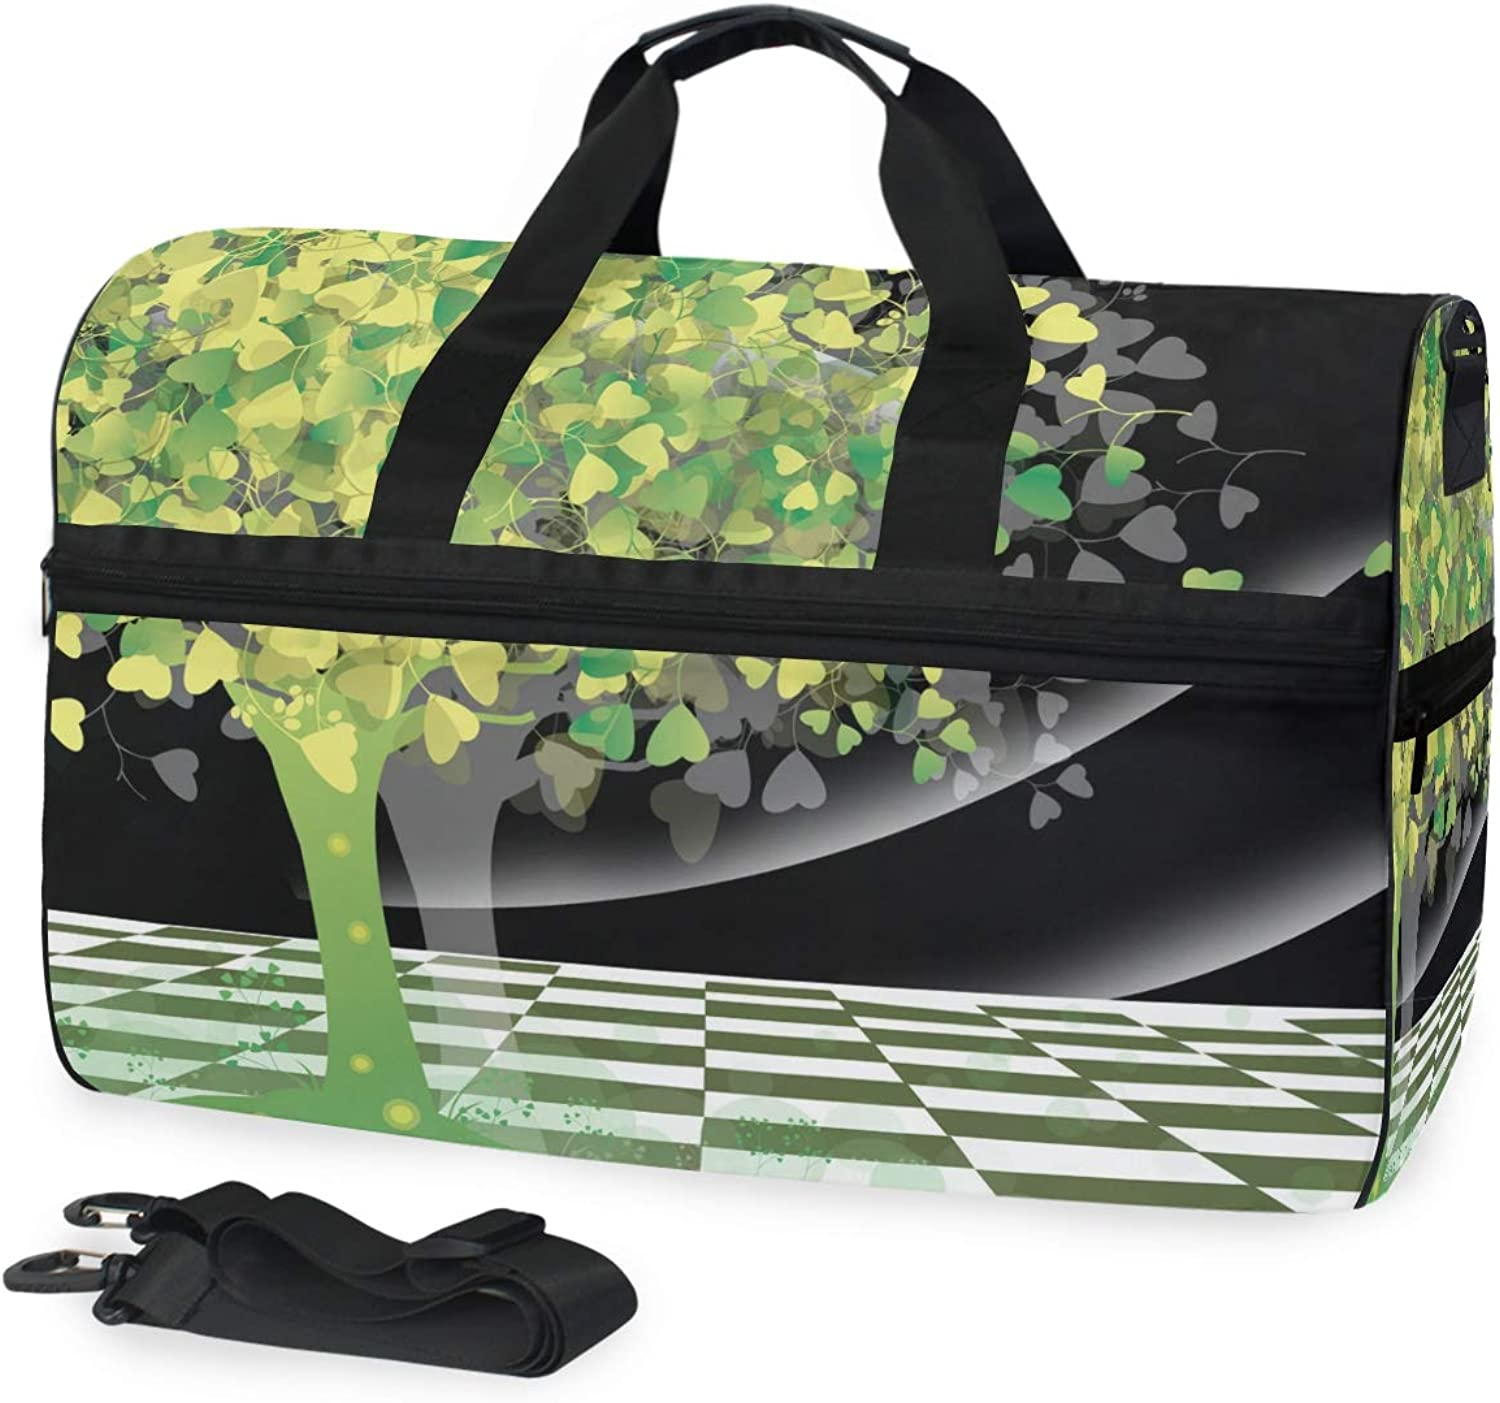 DEZIRO 45L Travel Duffel Bag Abstract Tree Heart Leaves Large Weekender Bag with shoes Compartment